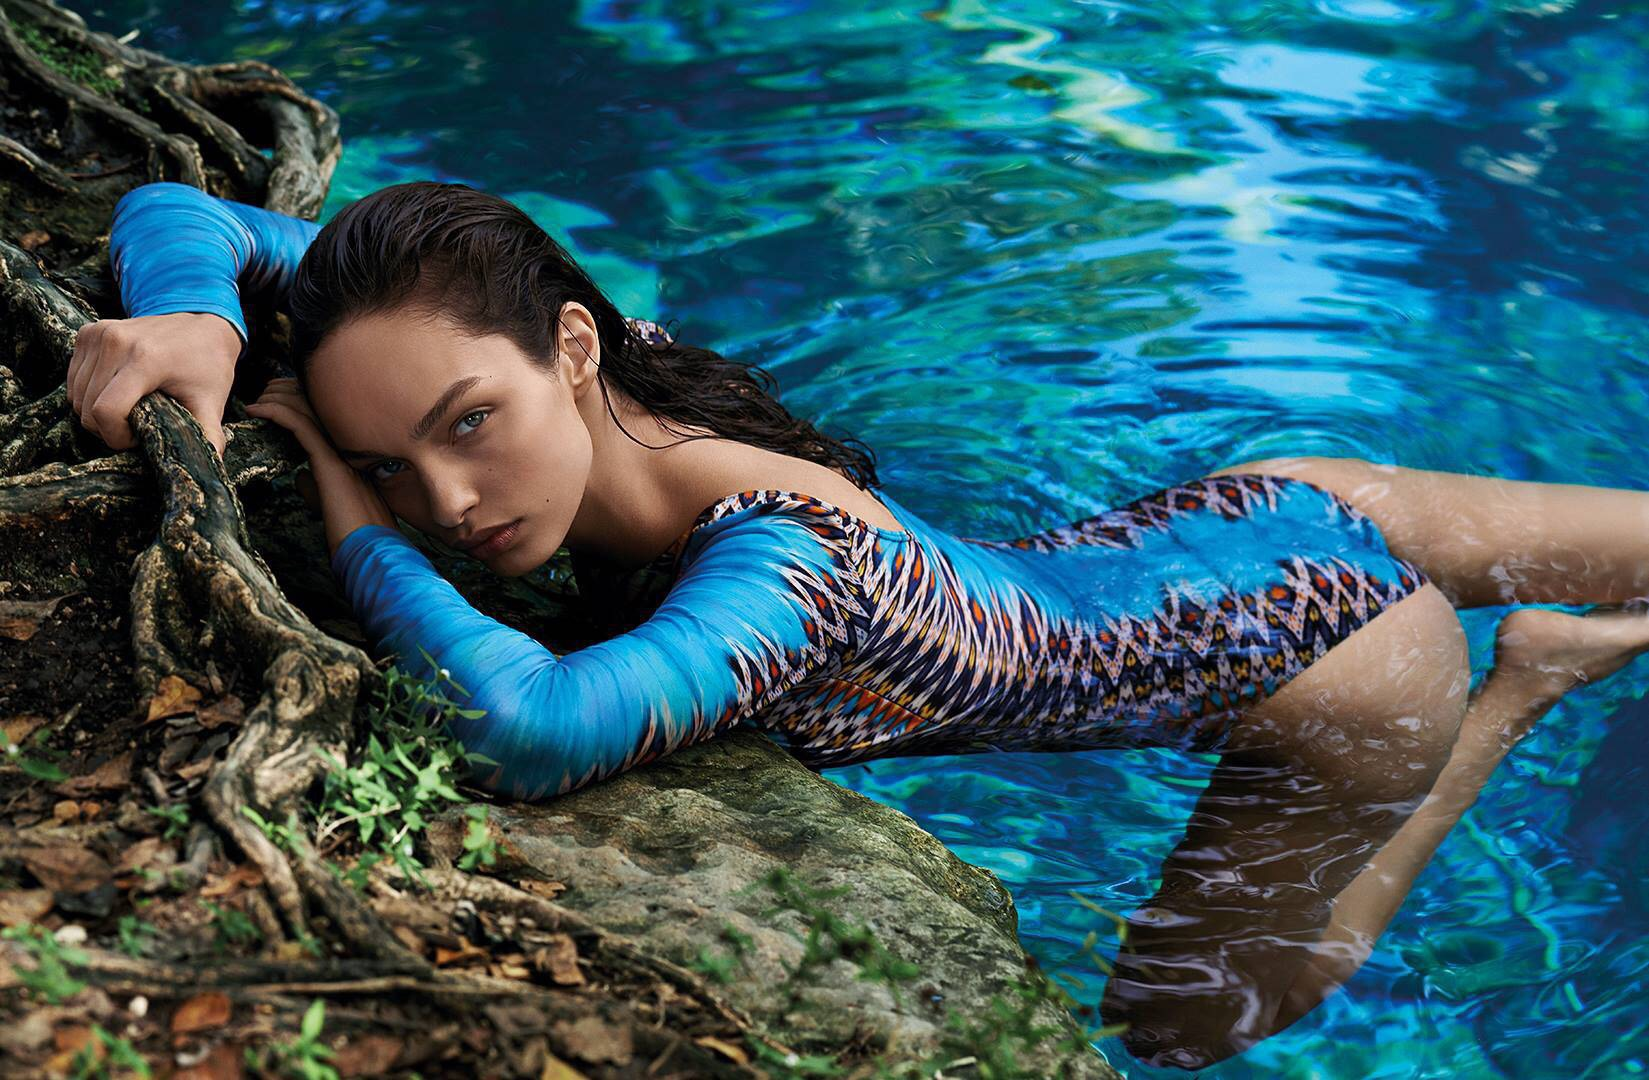 luma grothe bathing suit wallpaper 59919